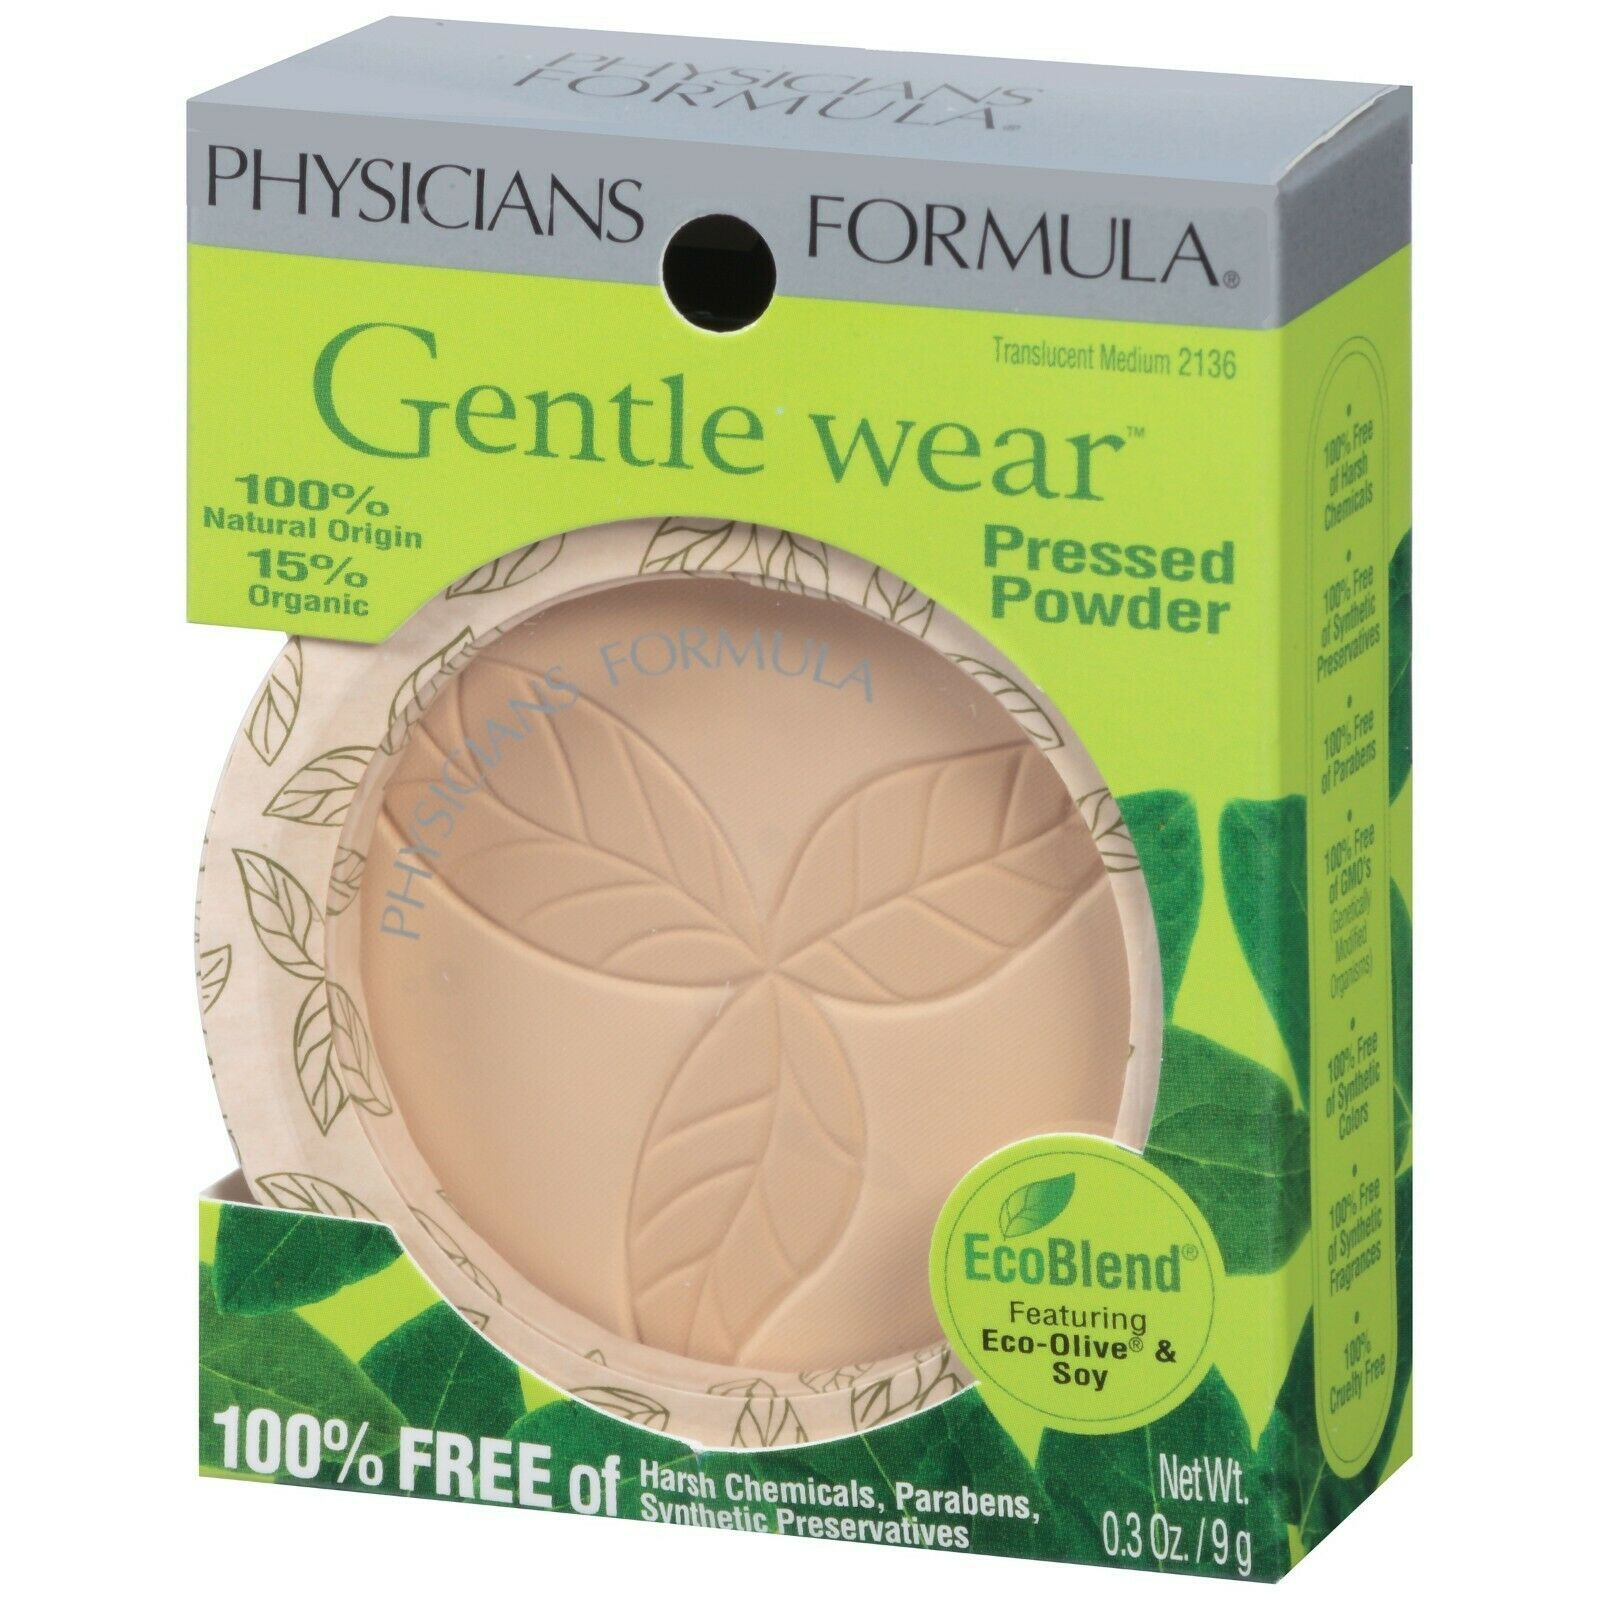 Physicians Formula Gentle Wear 100% Natural Organic Origin Pressed Powder, Trans - $17.81